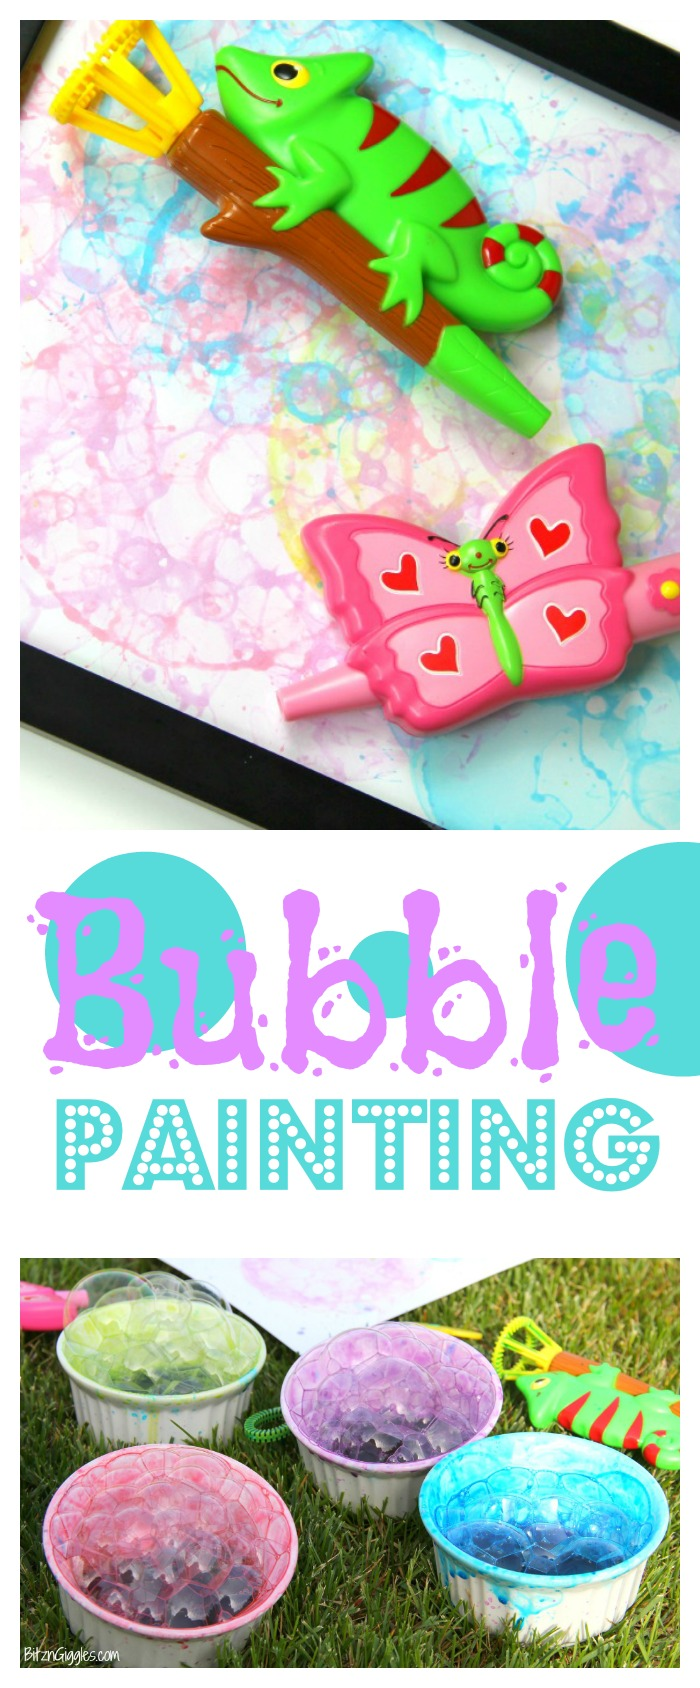 Bubble Painting - You only need two ingredients to make this colorful and gorgeous bubble art that's worthy of a frame!